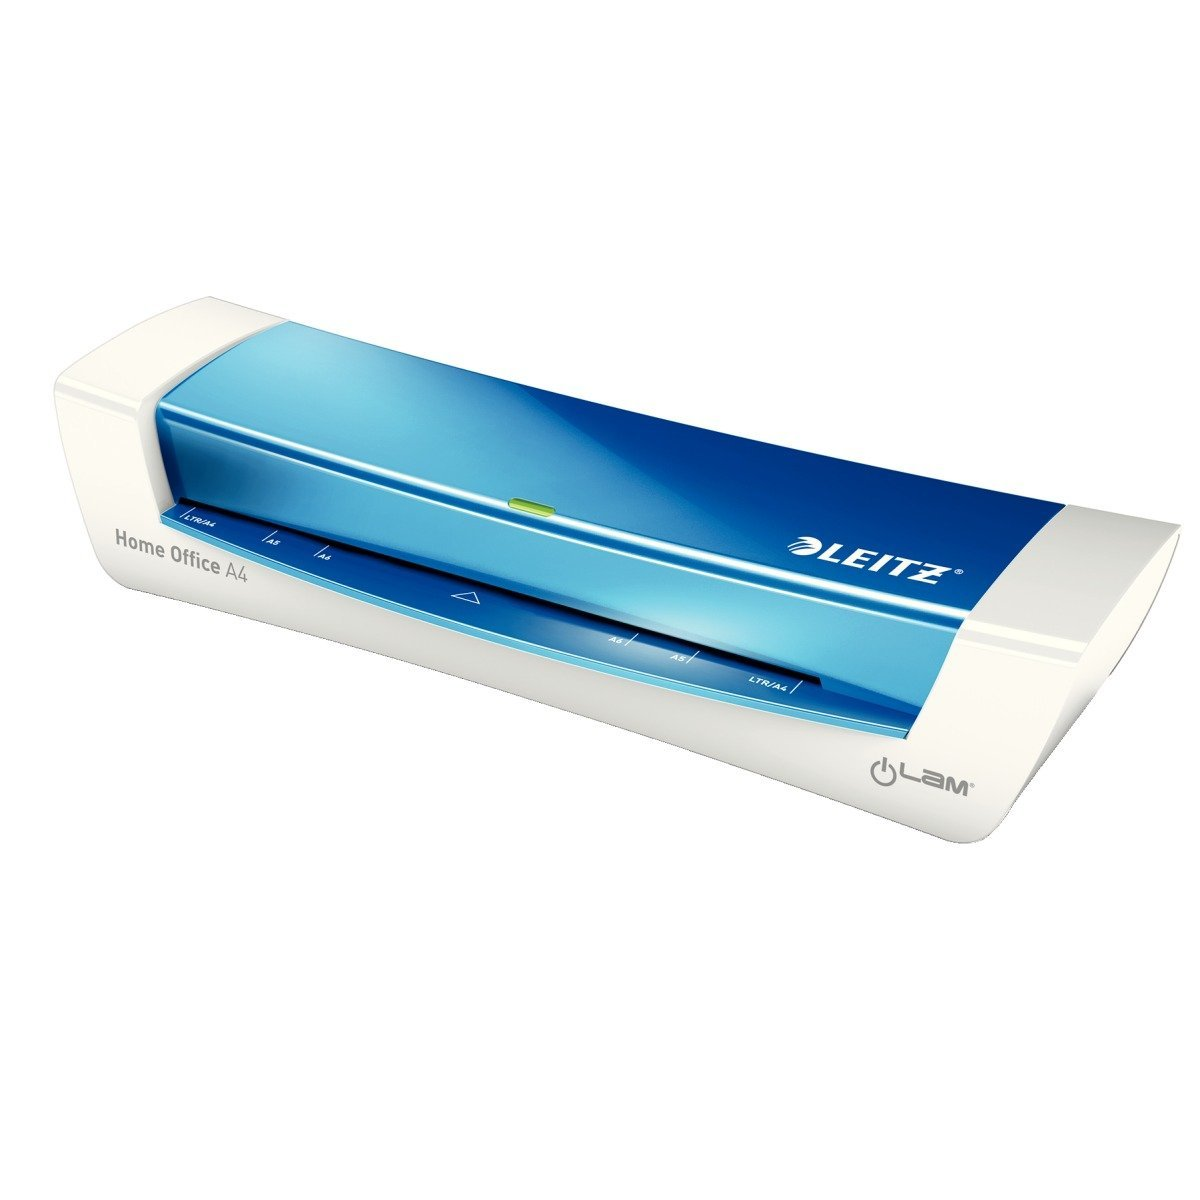 Leitz iLAM Laminator Home Office A4 Blue/White